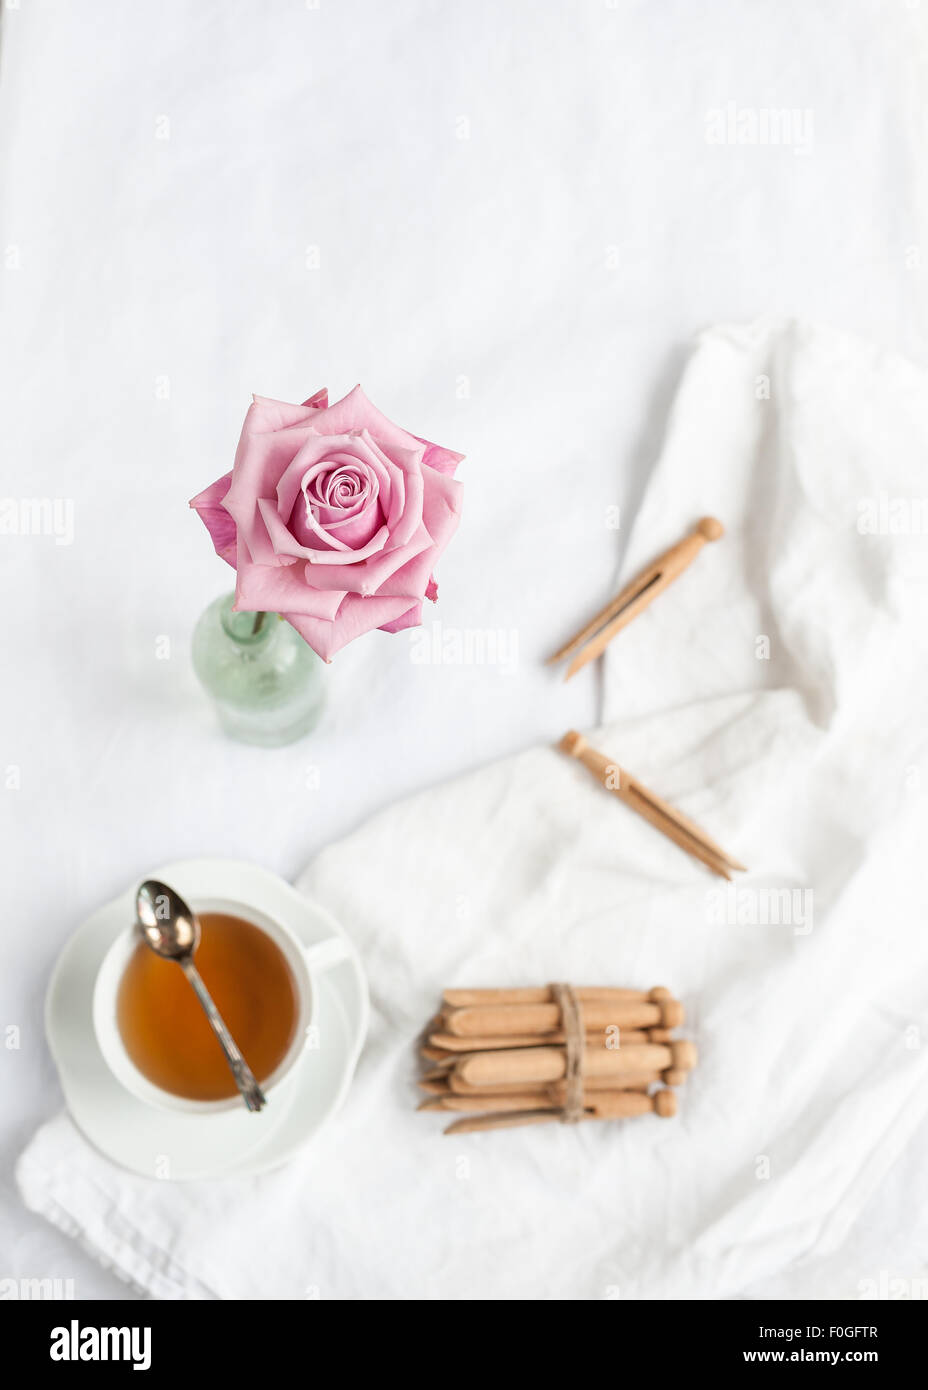 a single pink rose in focus, with blurred background of white fabric, teacup with teaspoon, and dolly clothes pegs - Stock Image